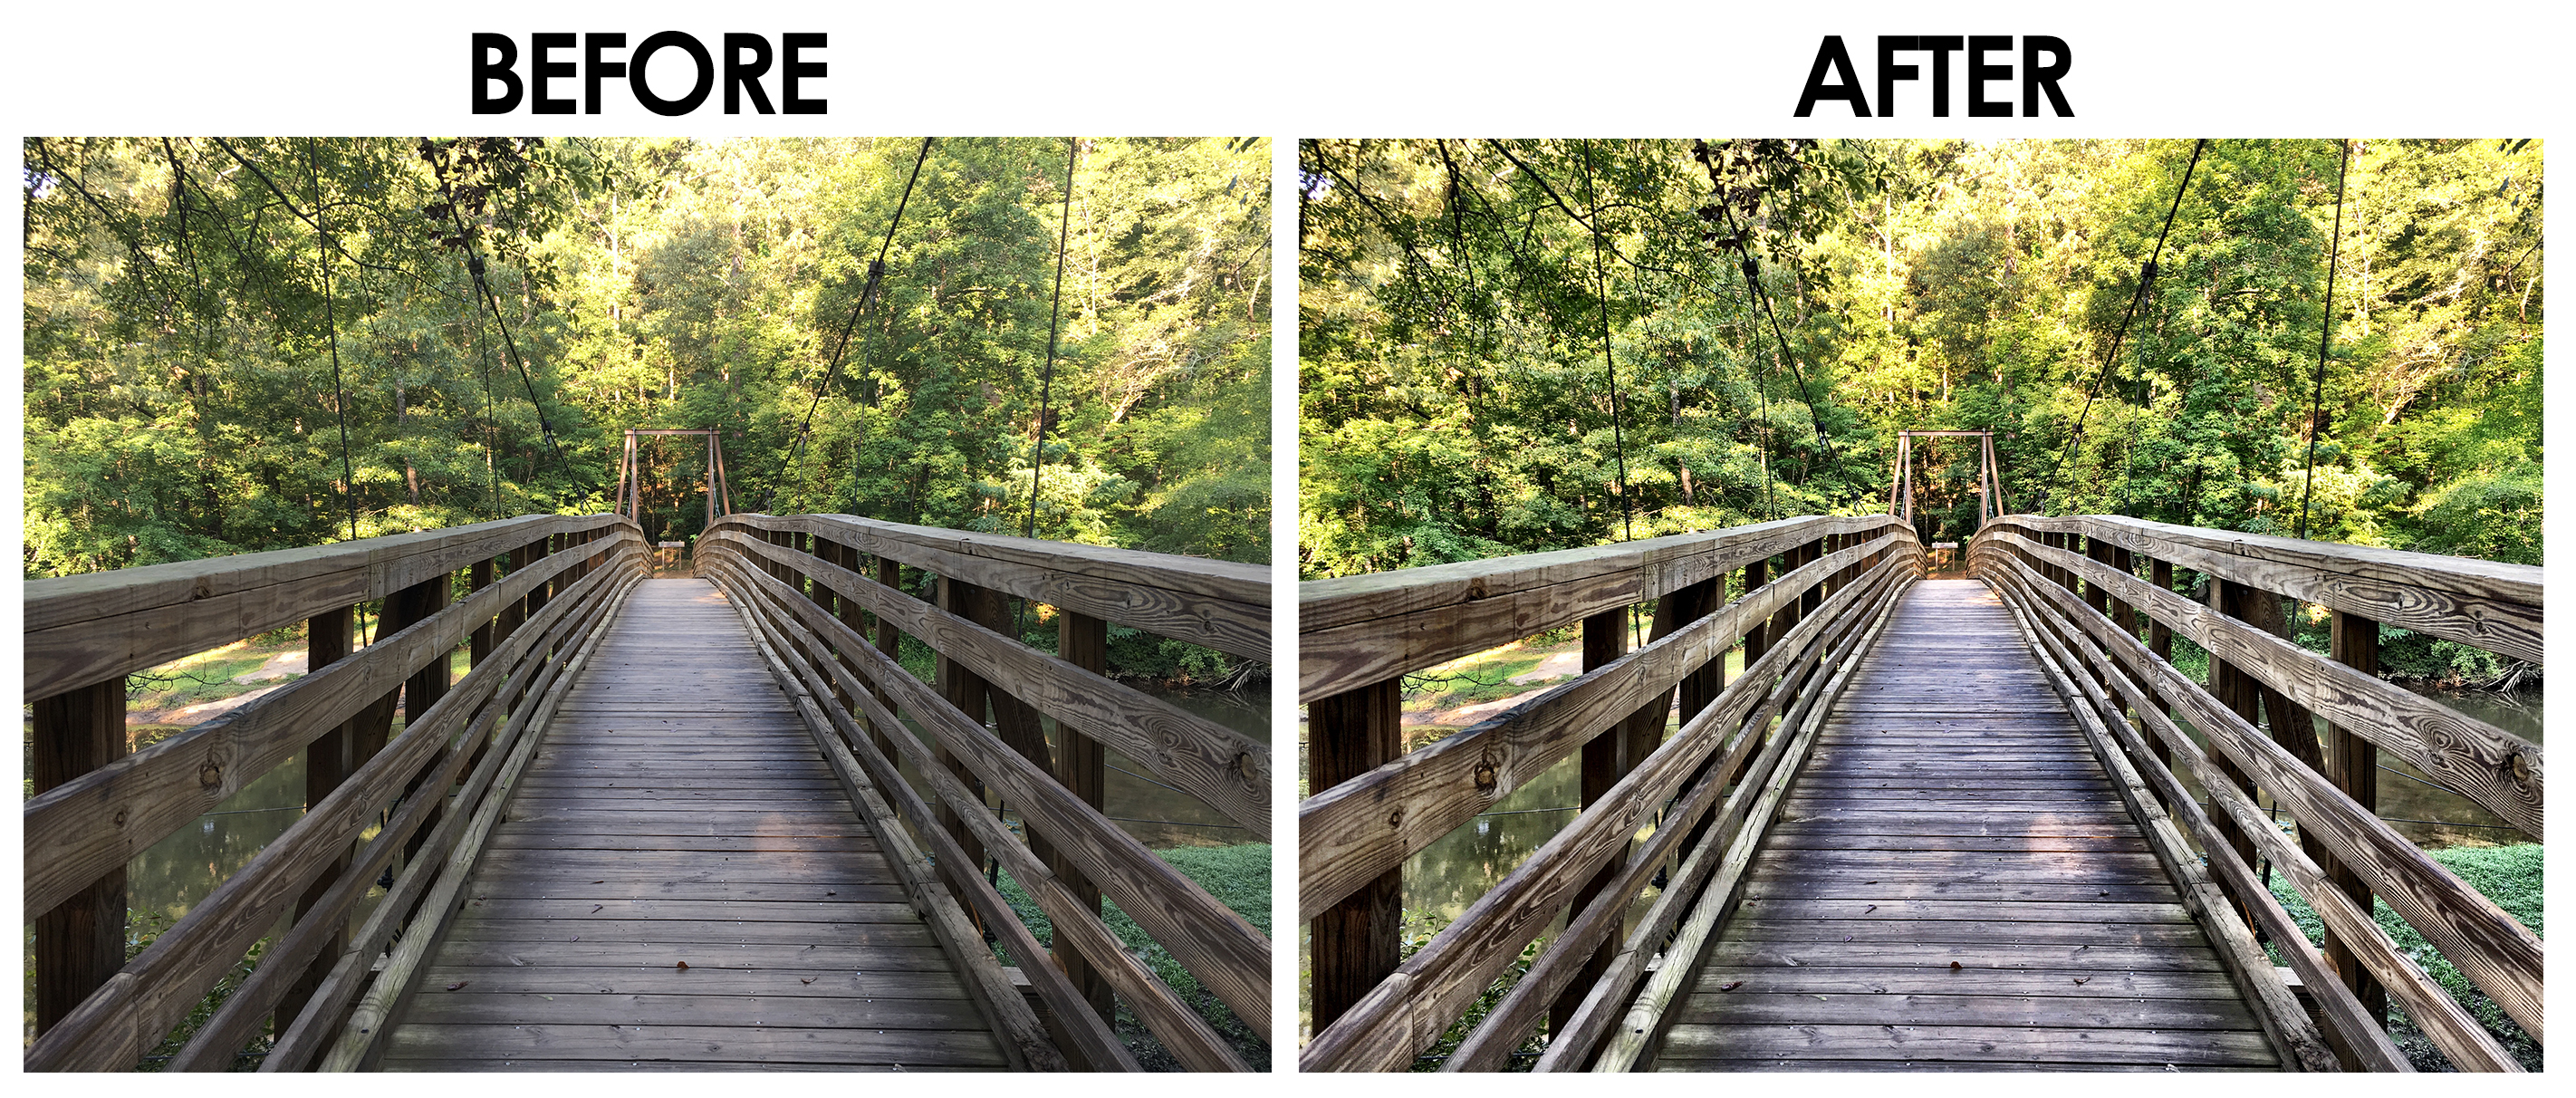 Bridge Before and After - Camera+ Photo App